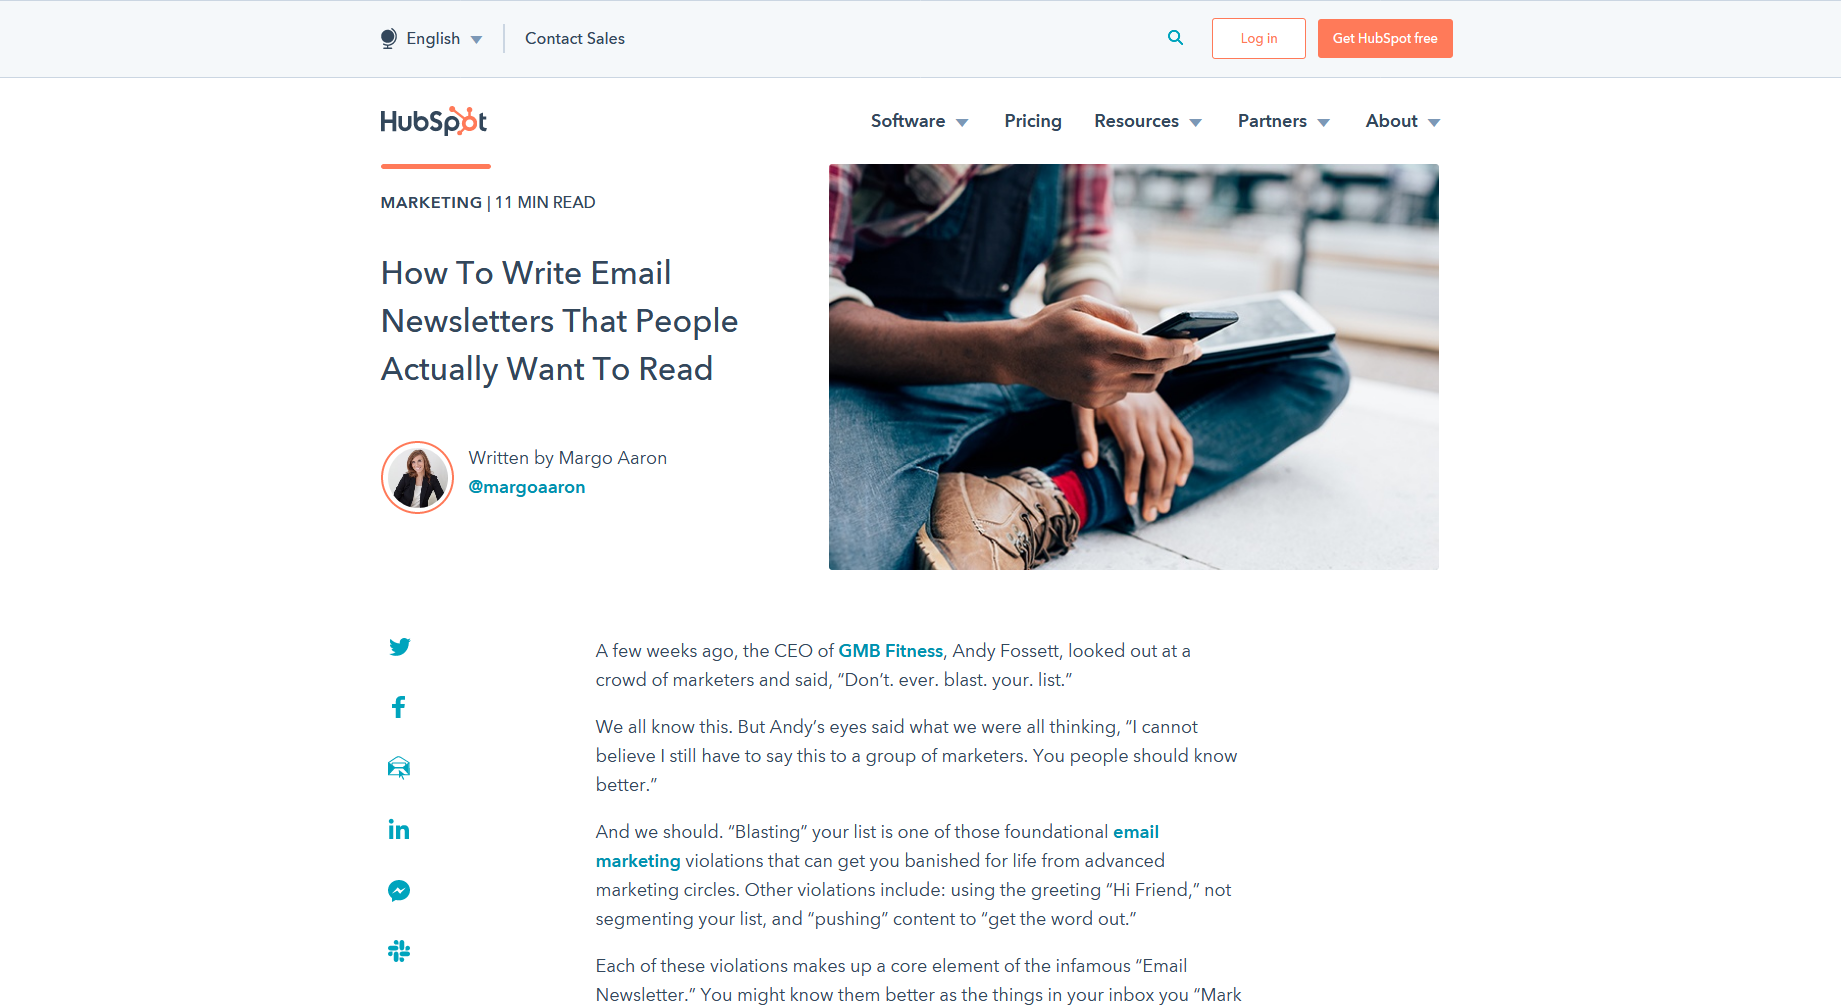 How To Write Email Newsletters That People Actually Want To Read